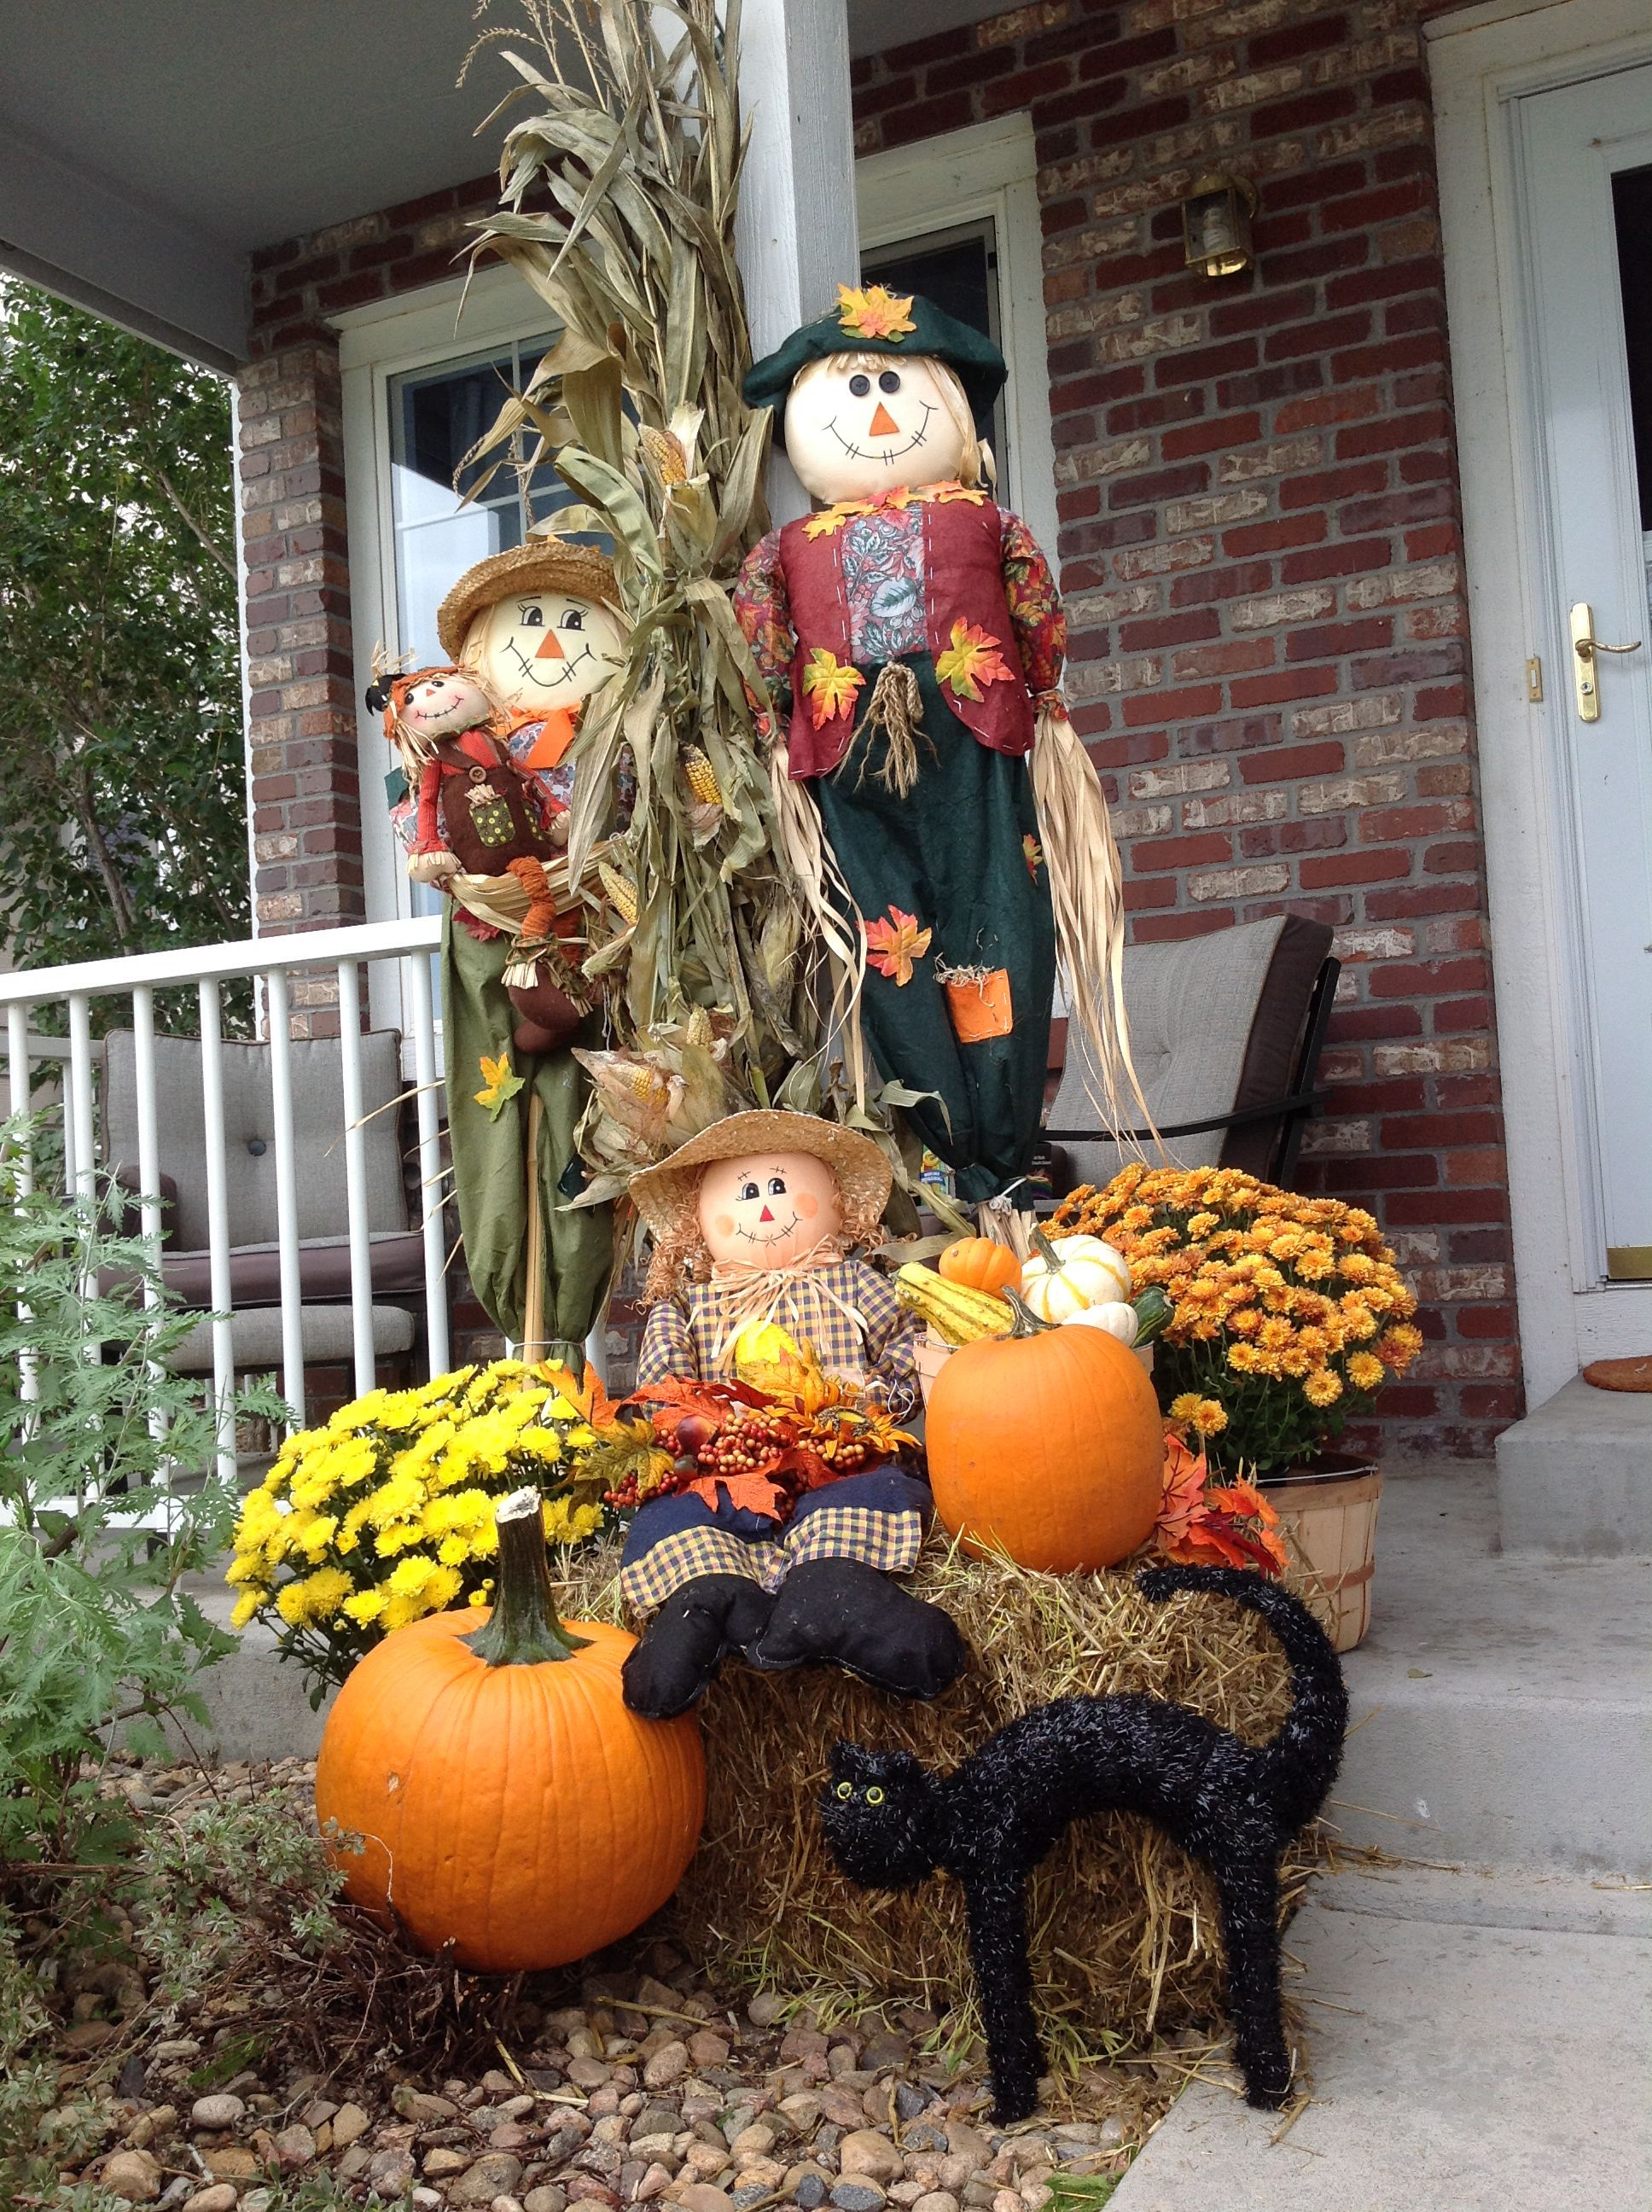 Decorating The Porch For Fall Fall Decorations Porch Fall Yard